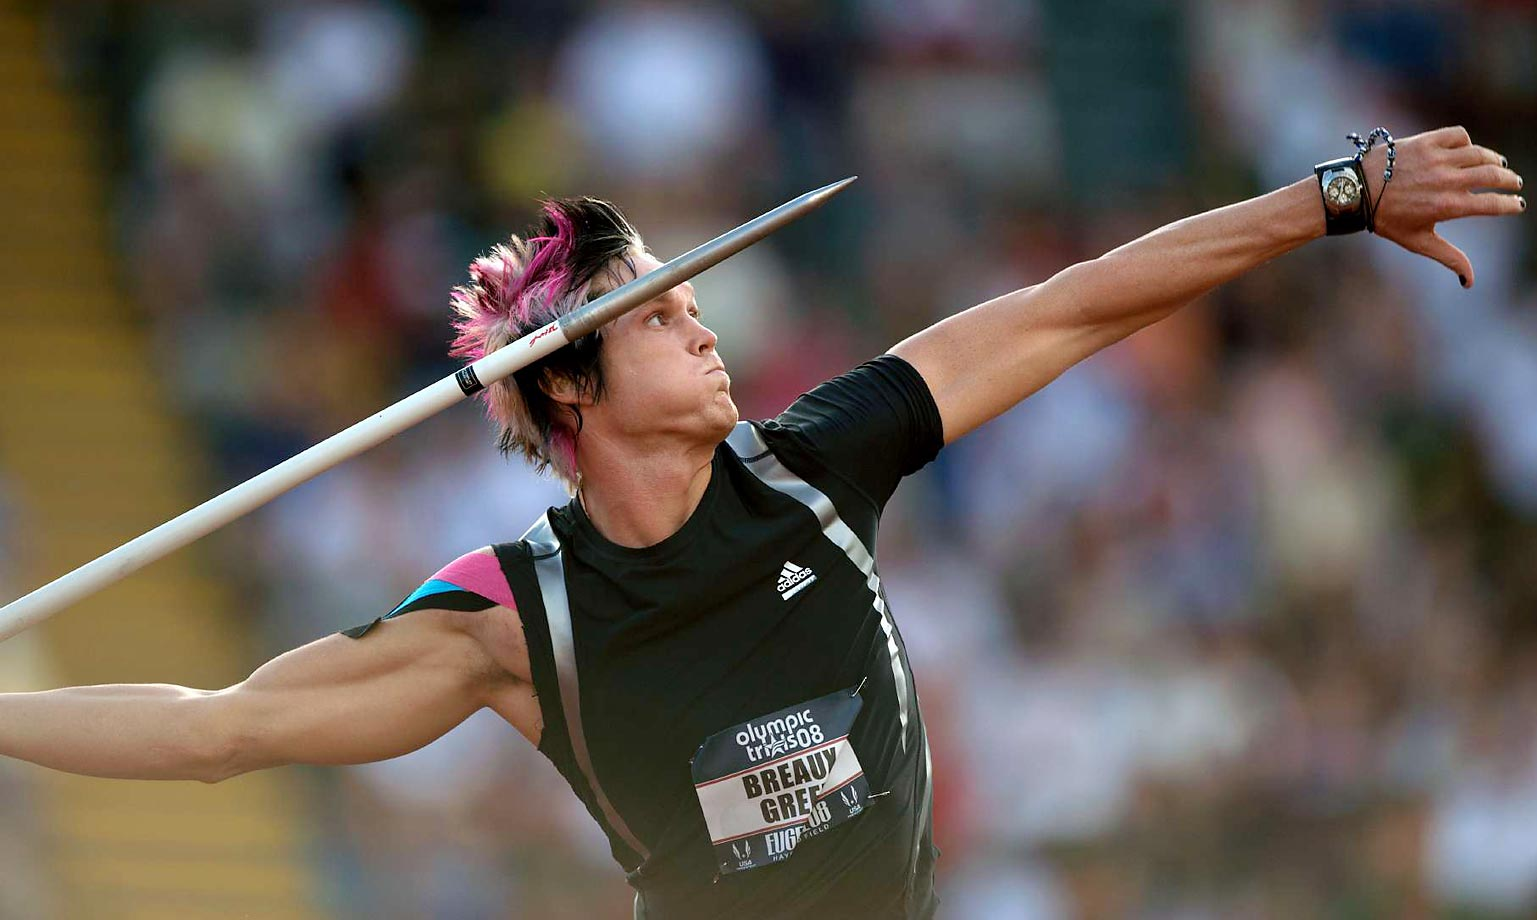 Breaux Greer competes in t he Javelin throw at the 2008 U.S. Team Trials.